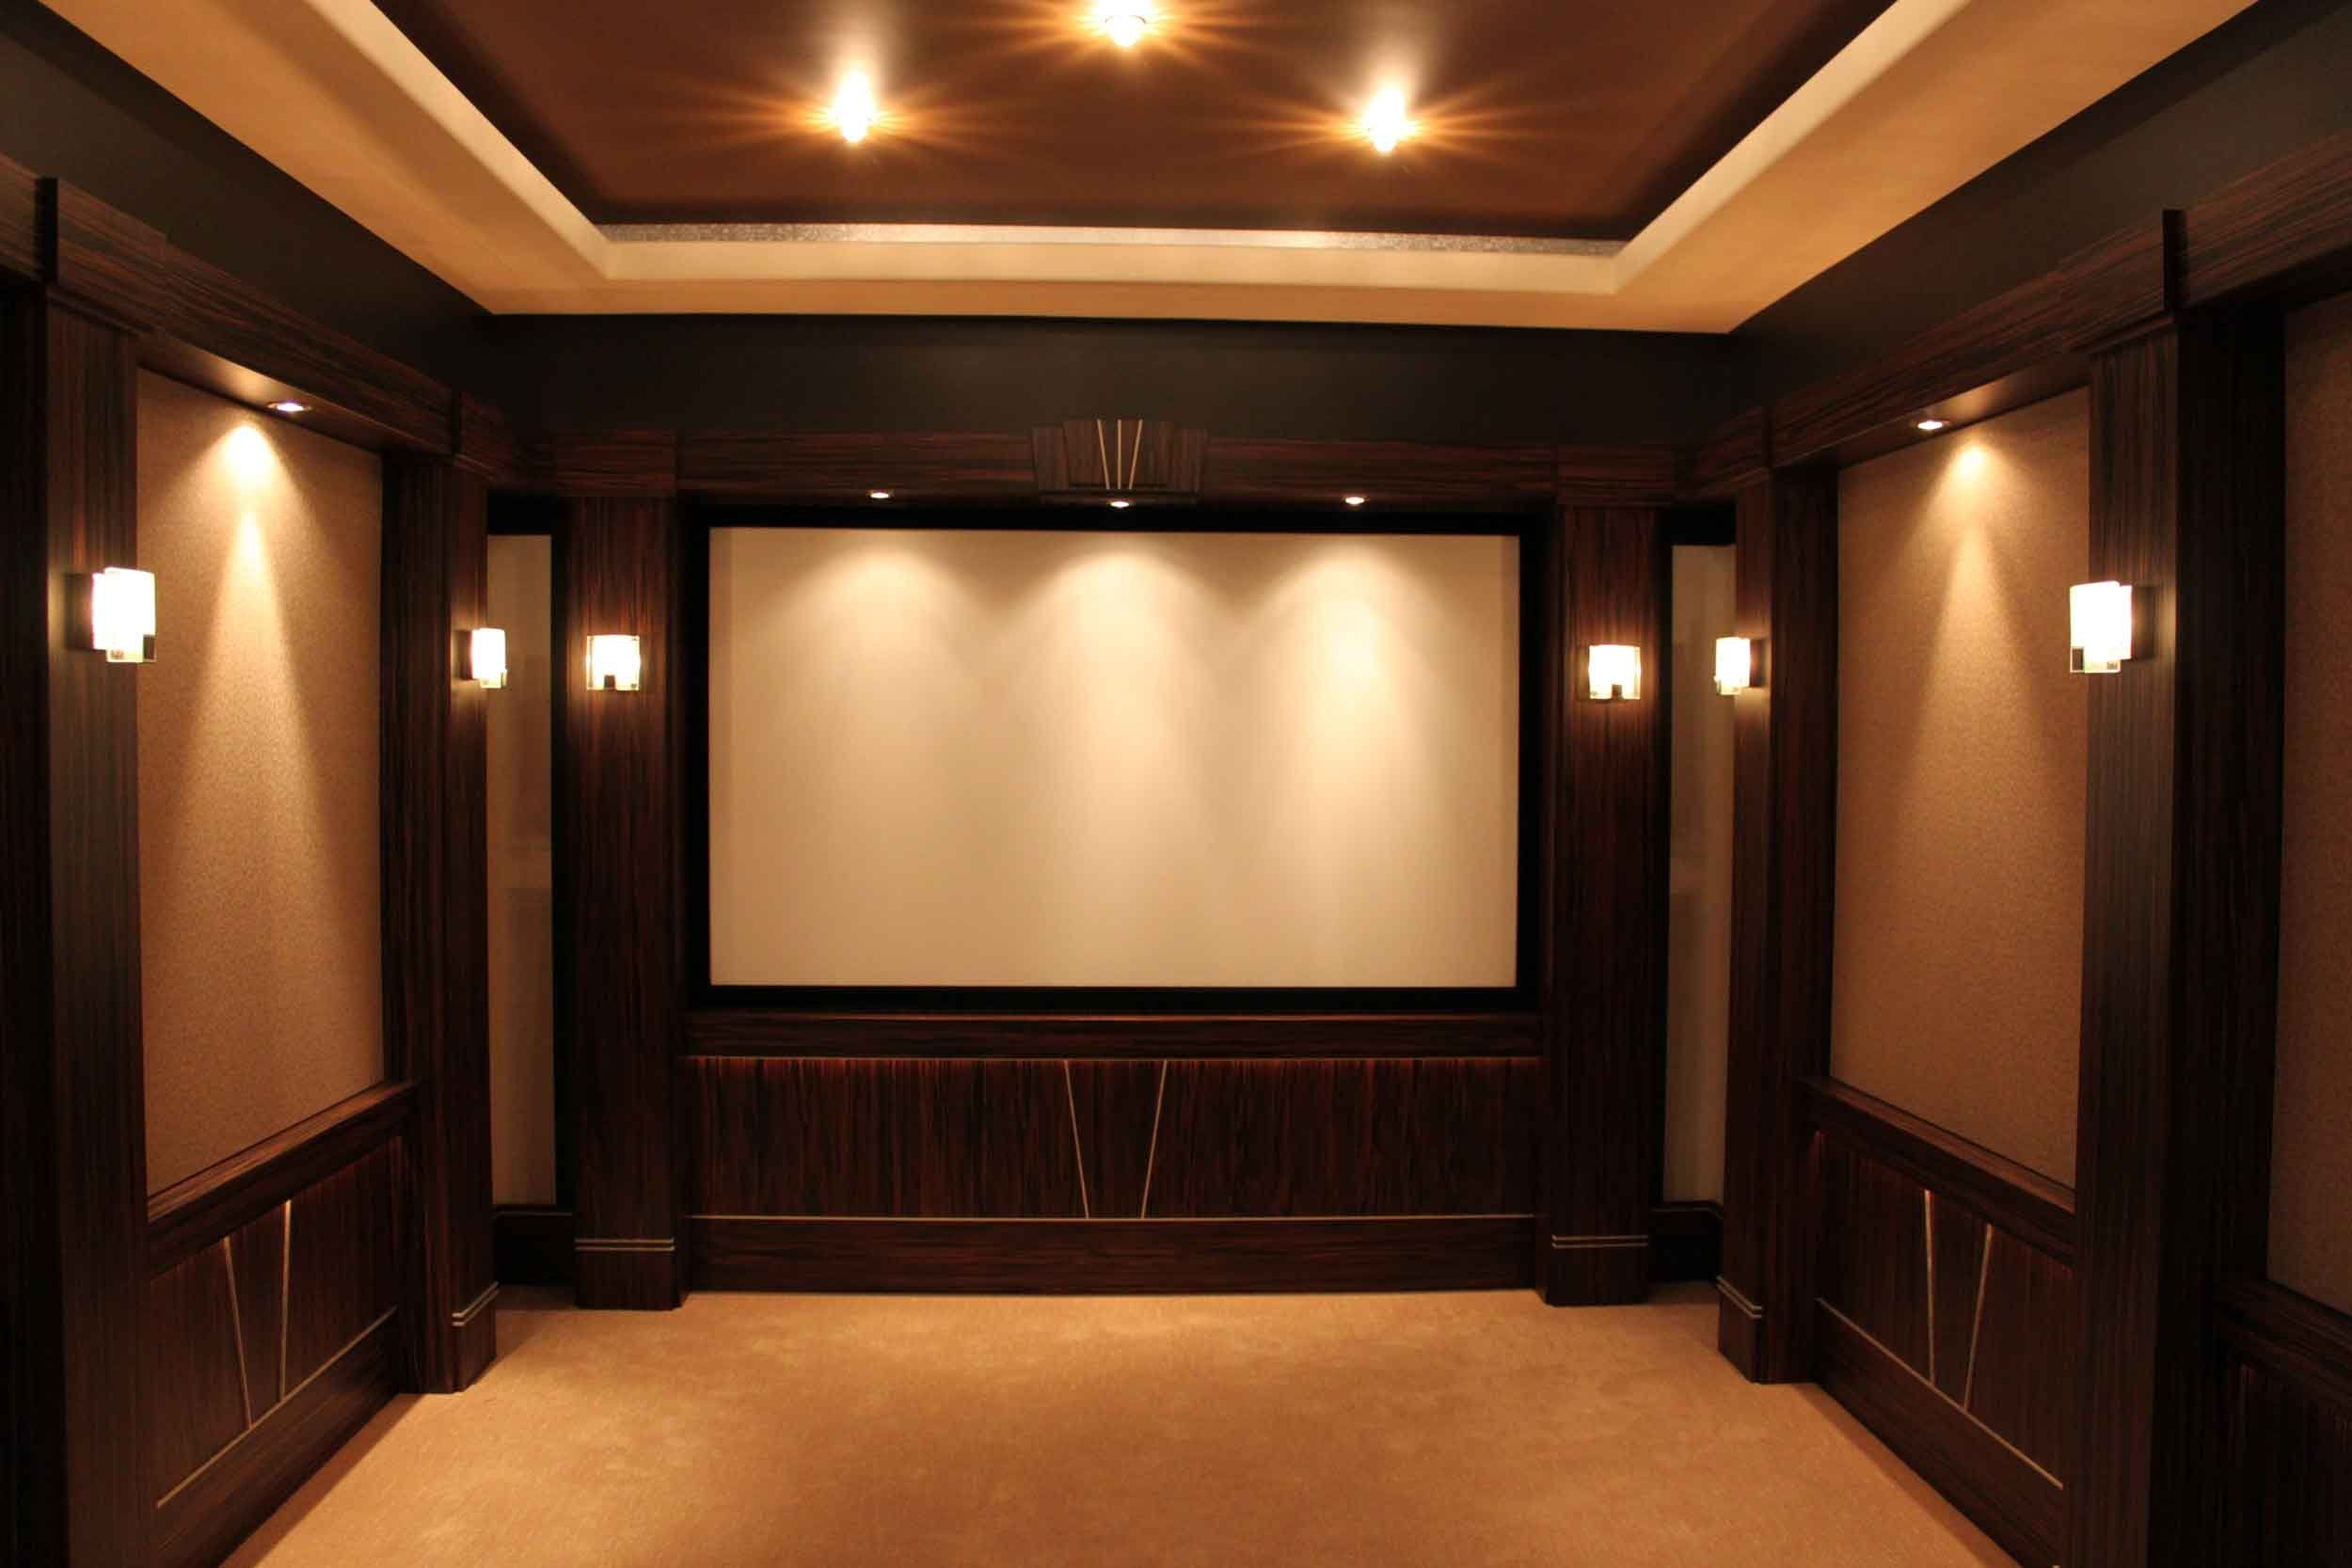 Superior Interior Small Home Theater Room Ideas Big Screen On The Beige Wall Long  Table Bar Movie Small Home Theater Room Ideas Big Screen On The Beige Wall  Long